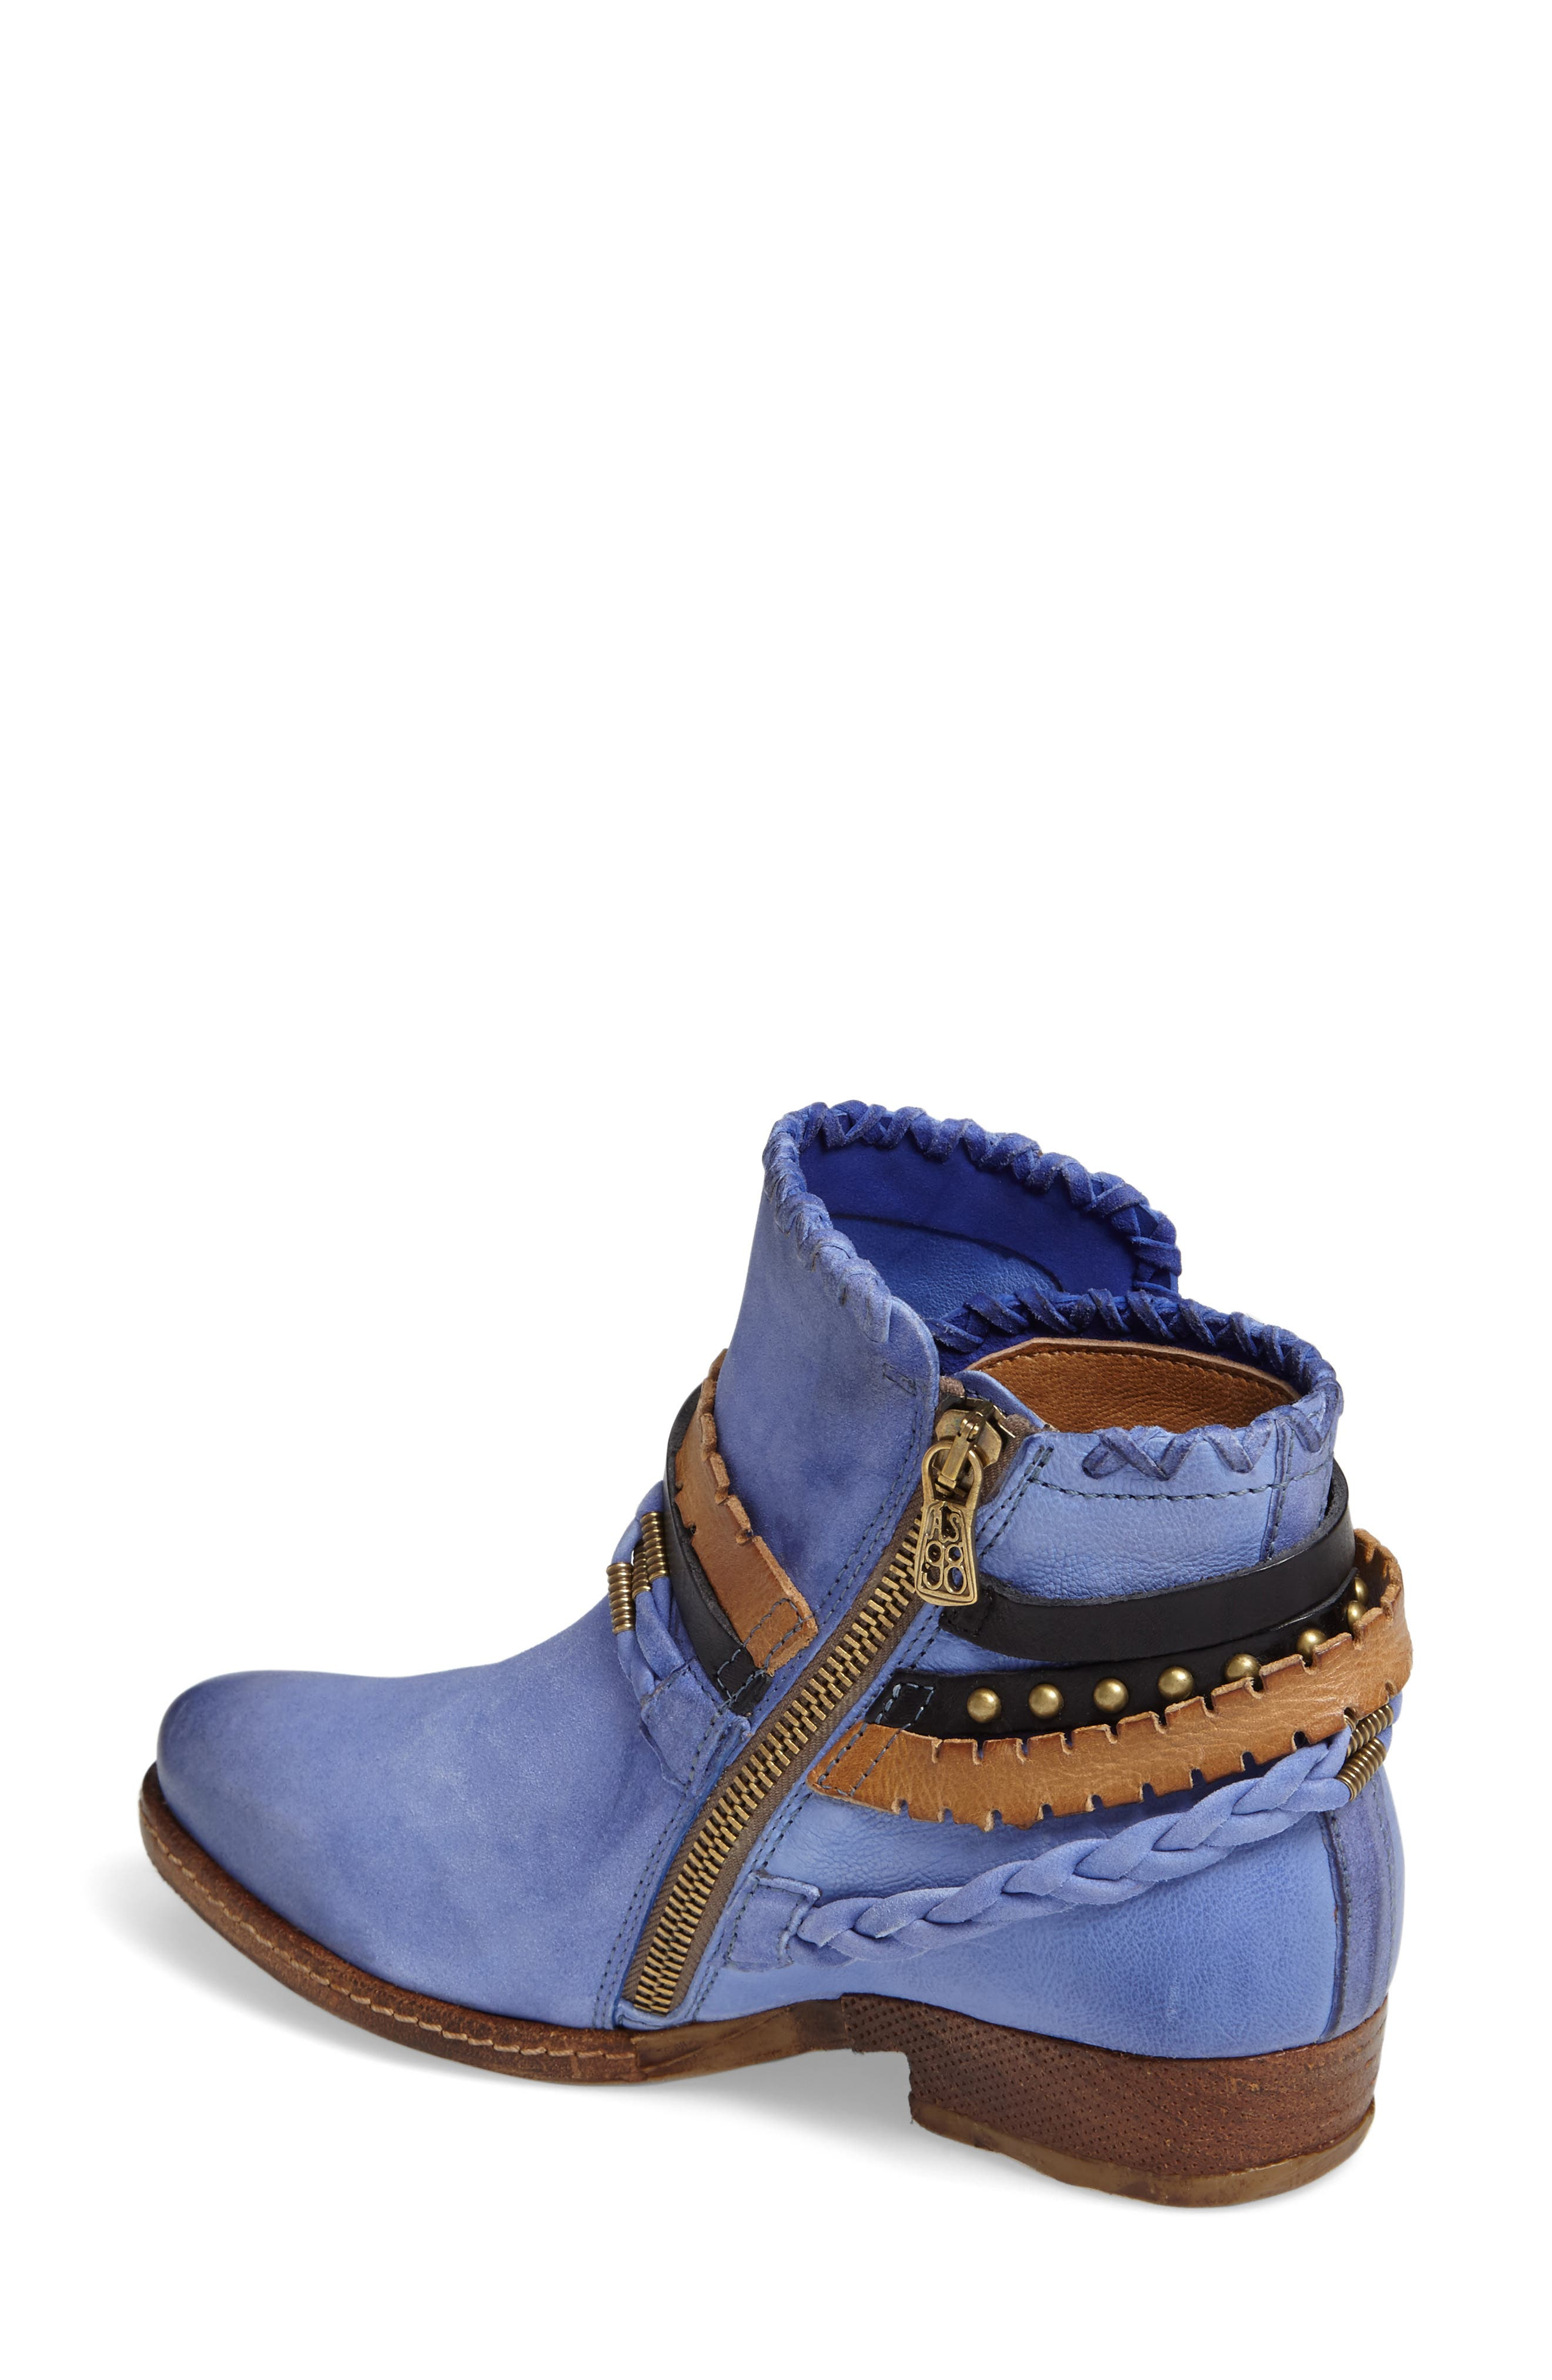 A.S. 98 Barney Bootie,                             Alternate thumbnail 2, color,                             Blue Leather